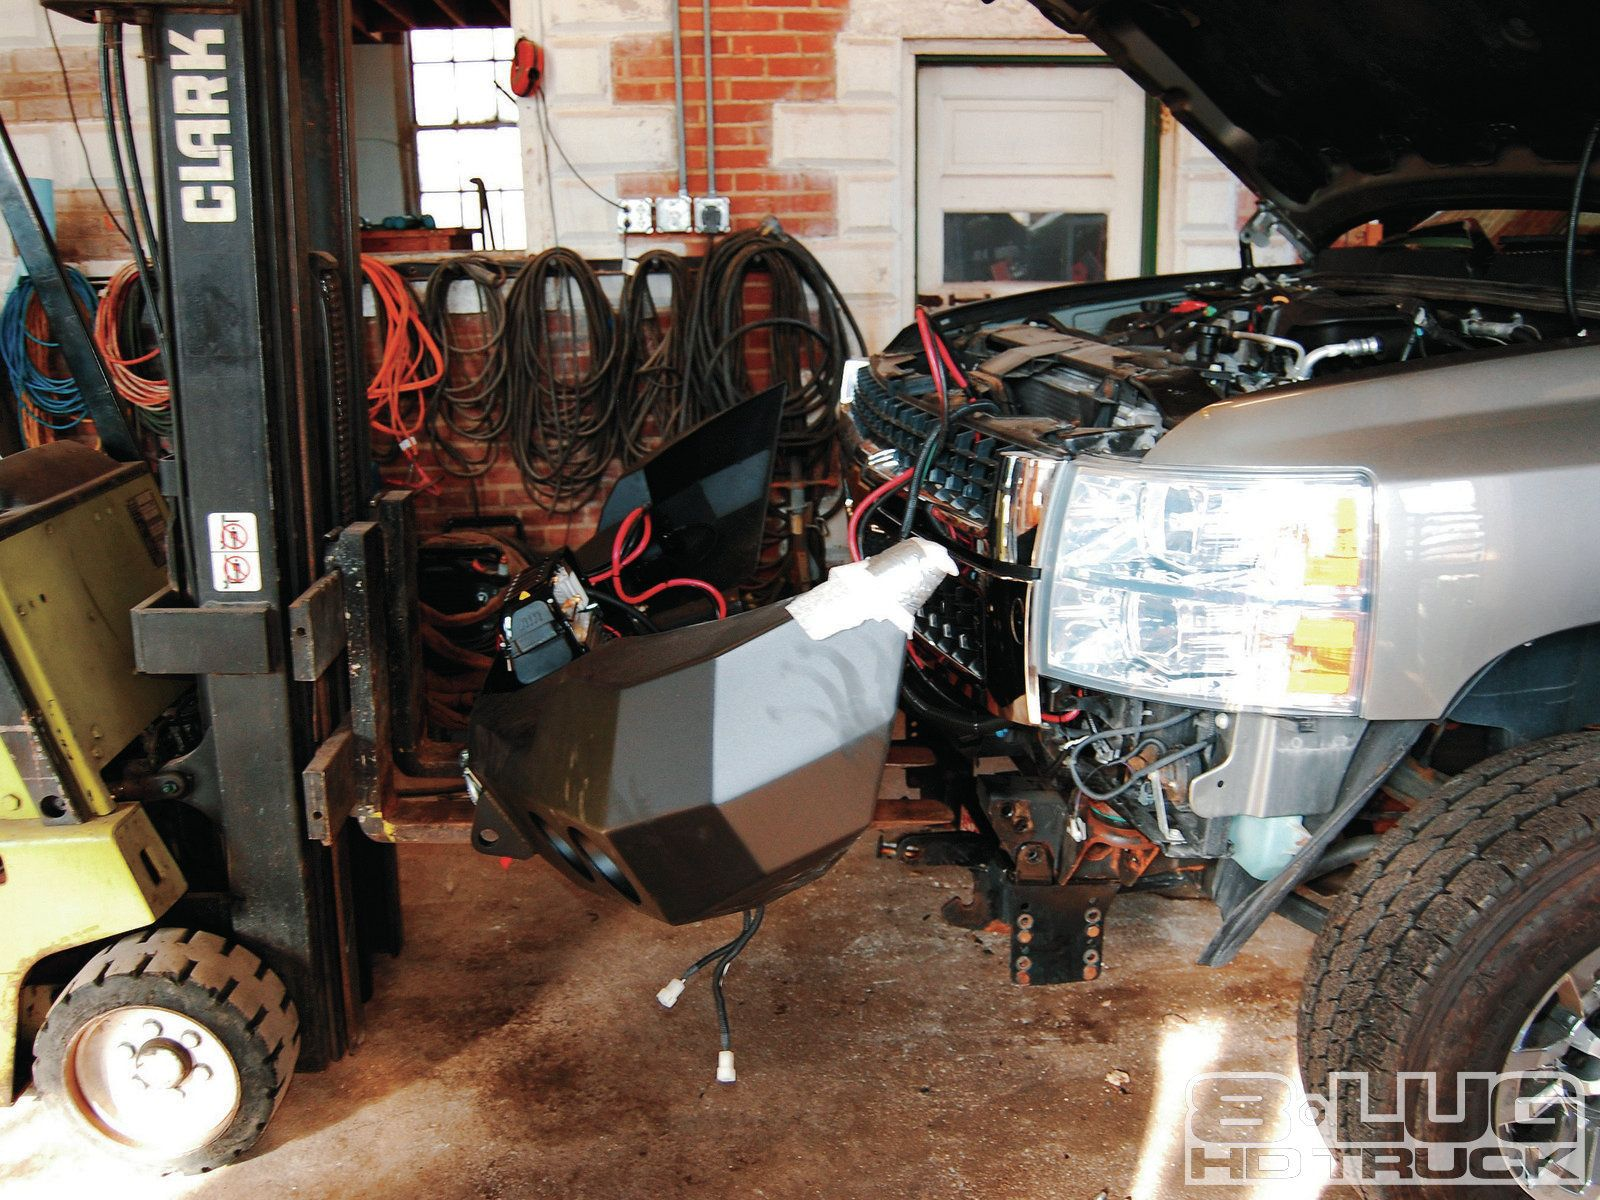 1210-8l-34+winch-time-ultimate-tow-and-work-truck-upgrades+front-bumper-and-winch.jpg